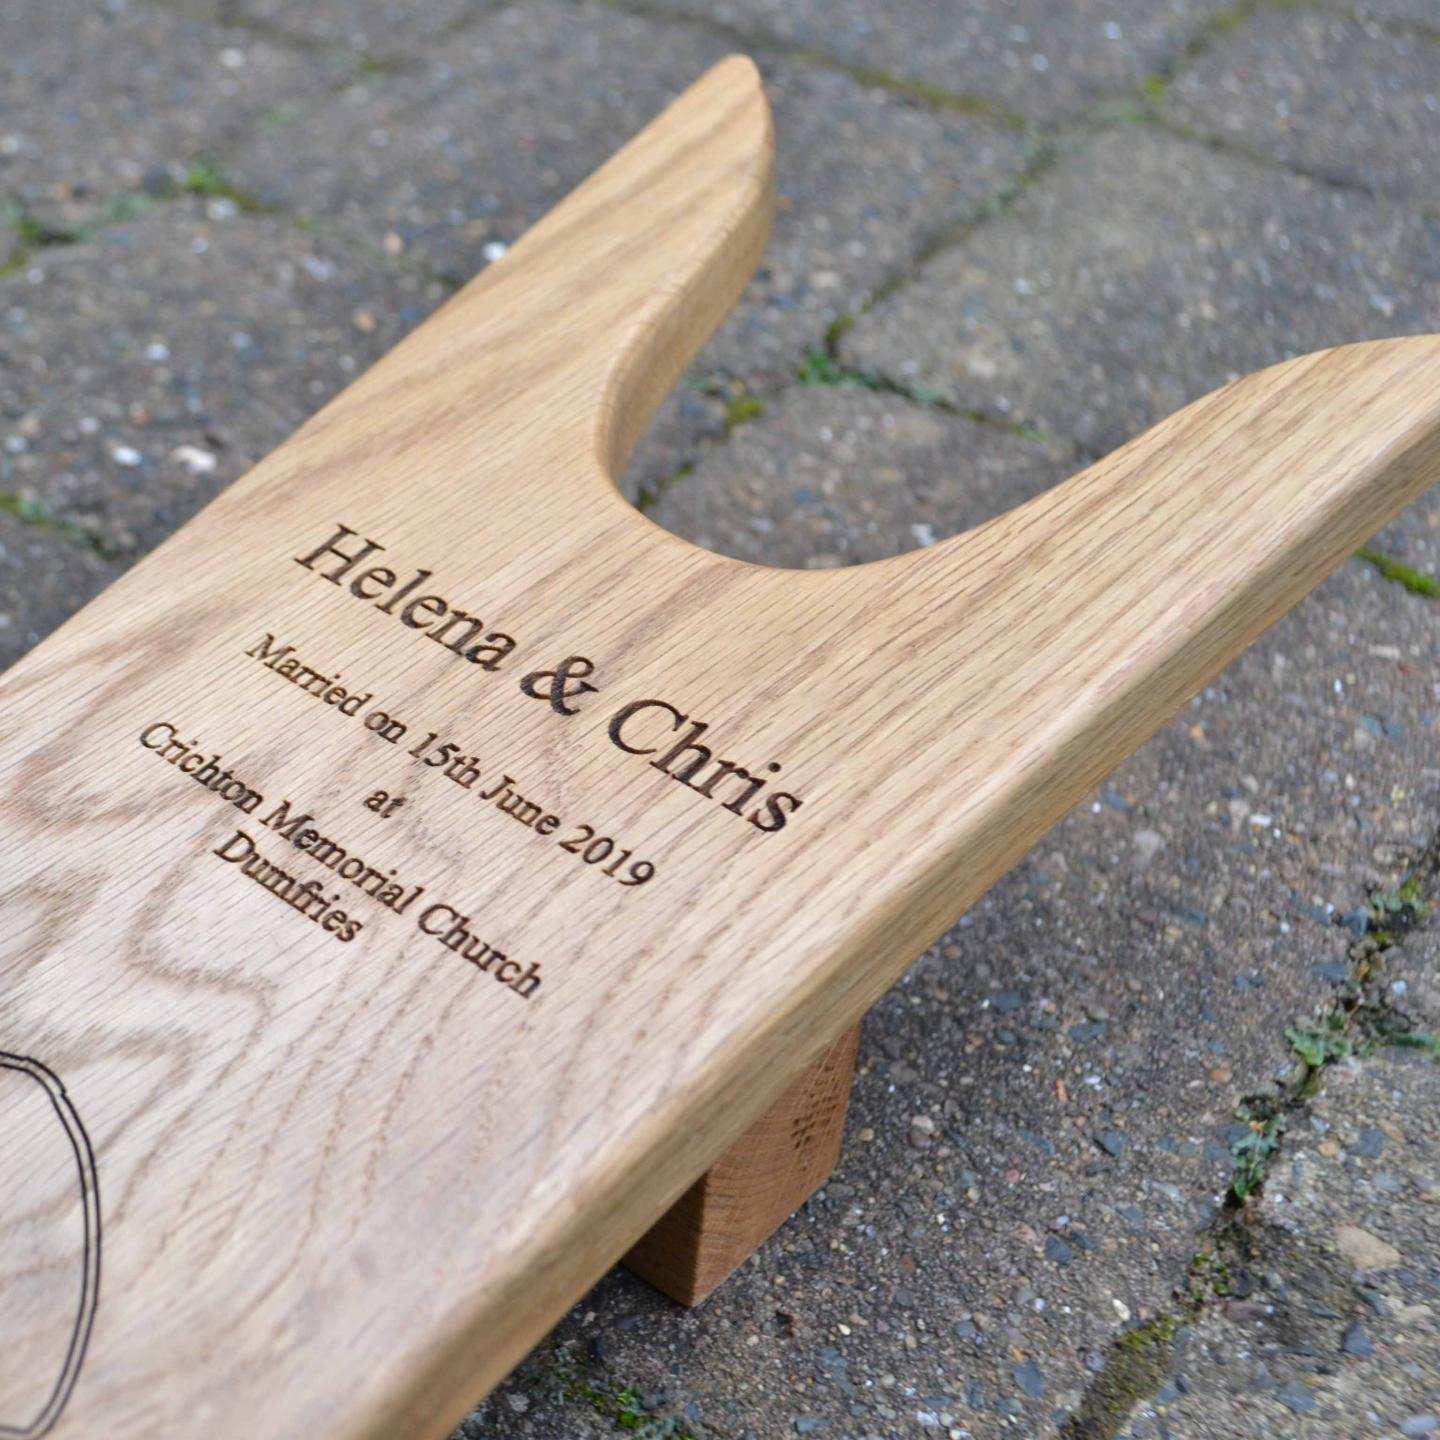 Coming very soon - www.hardwoodgifts.com